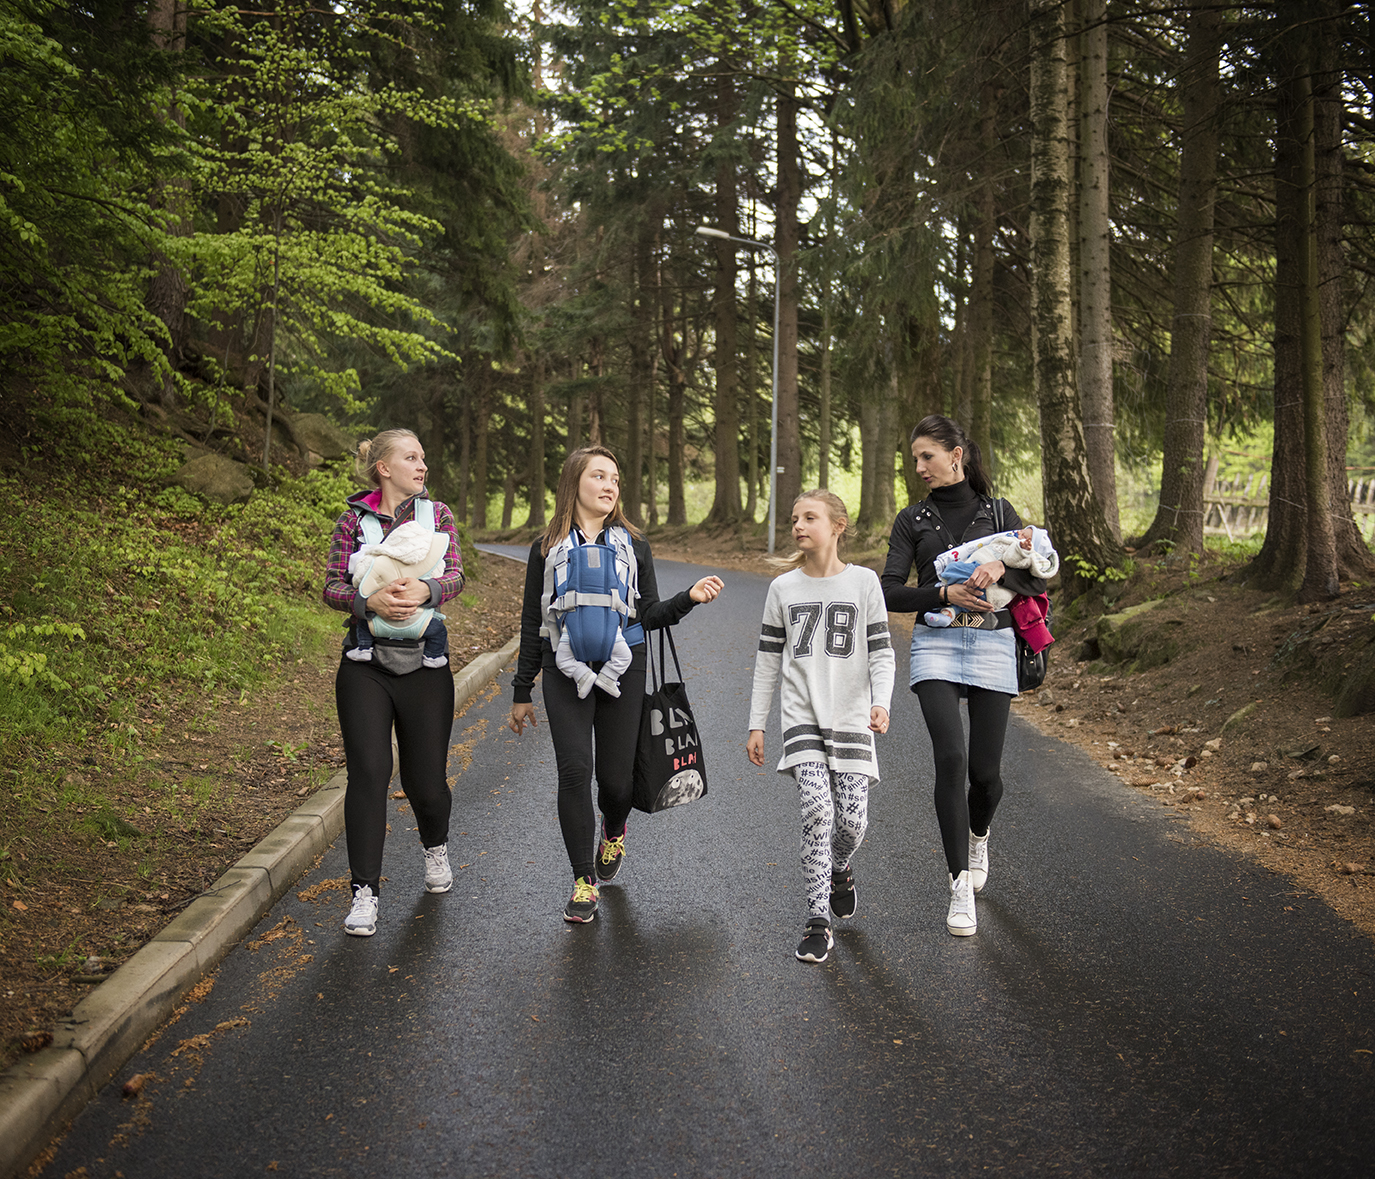 Basia, Dominika, Magda and Emilka are going trekking. A few times a year doll lovers and collectors gather to spend time together and exchange experiences, like all new mummies do. One of them, Dominika is a teenager .Knowing she's too young to have kids she adopted a doll to fulfil her strong maternal instinct.